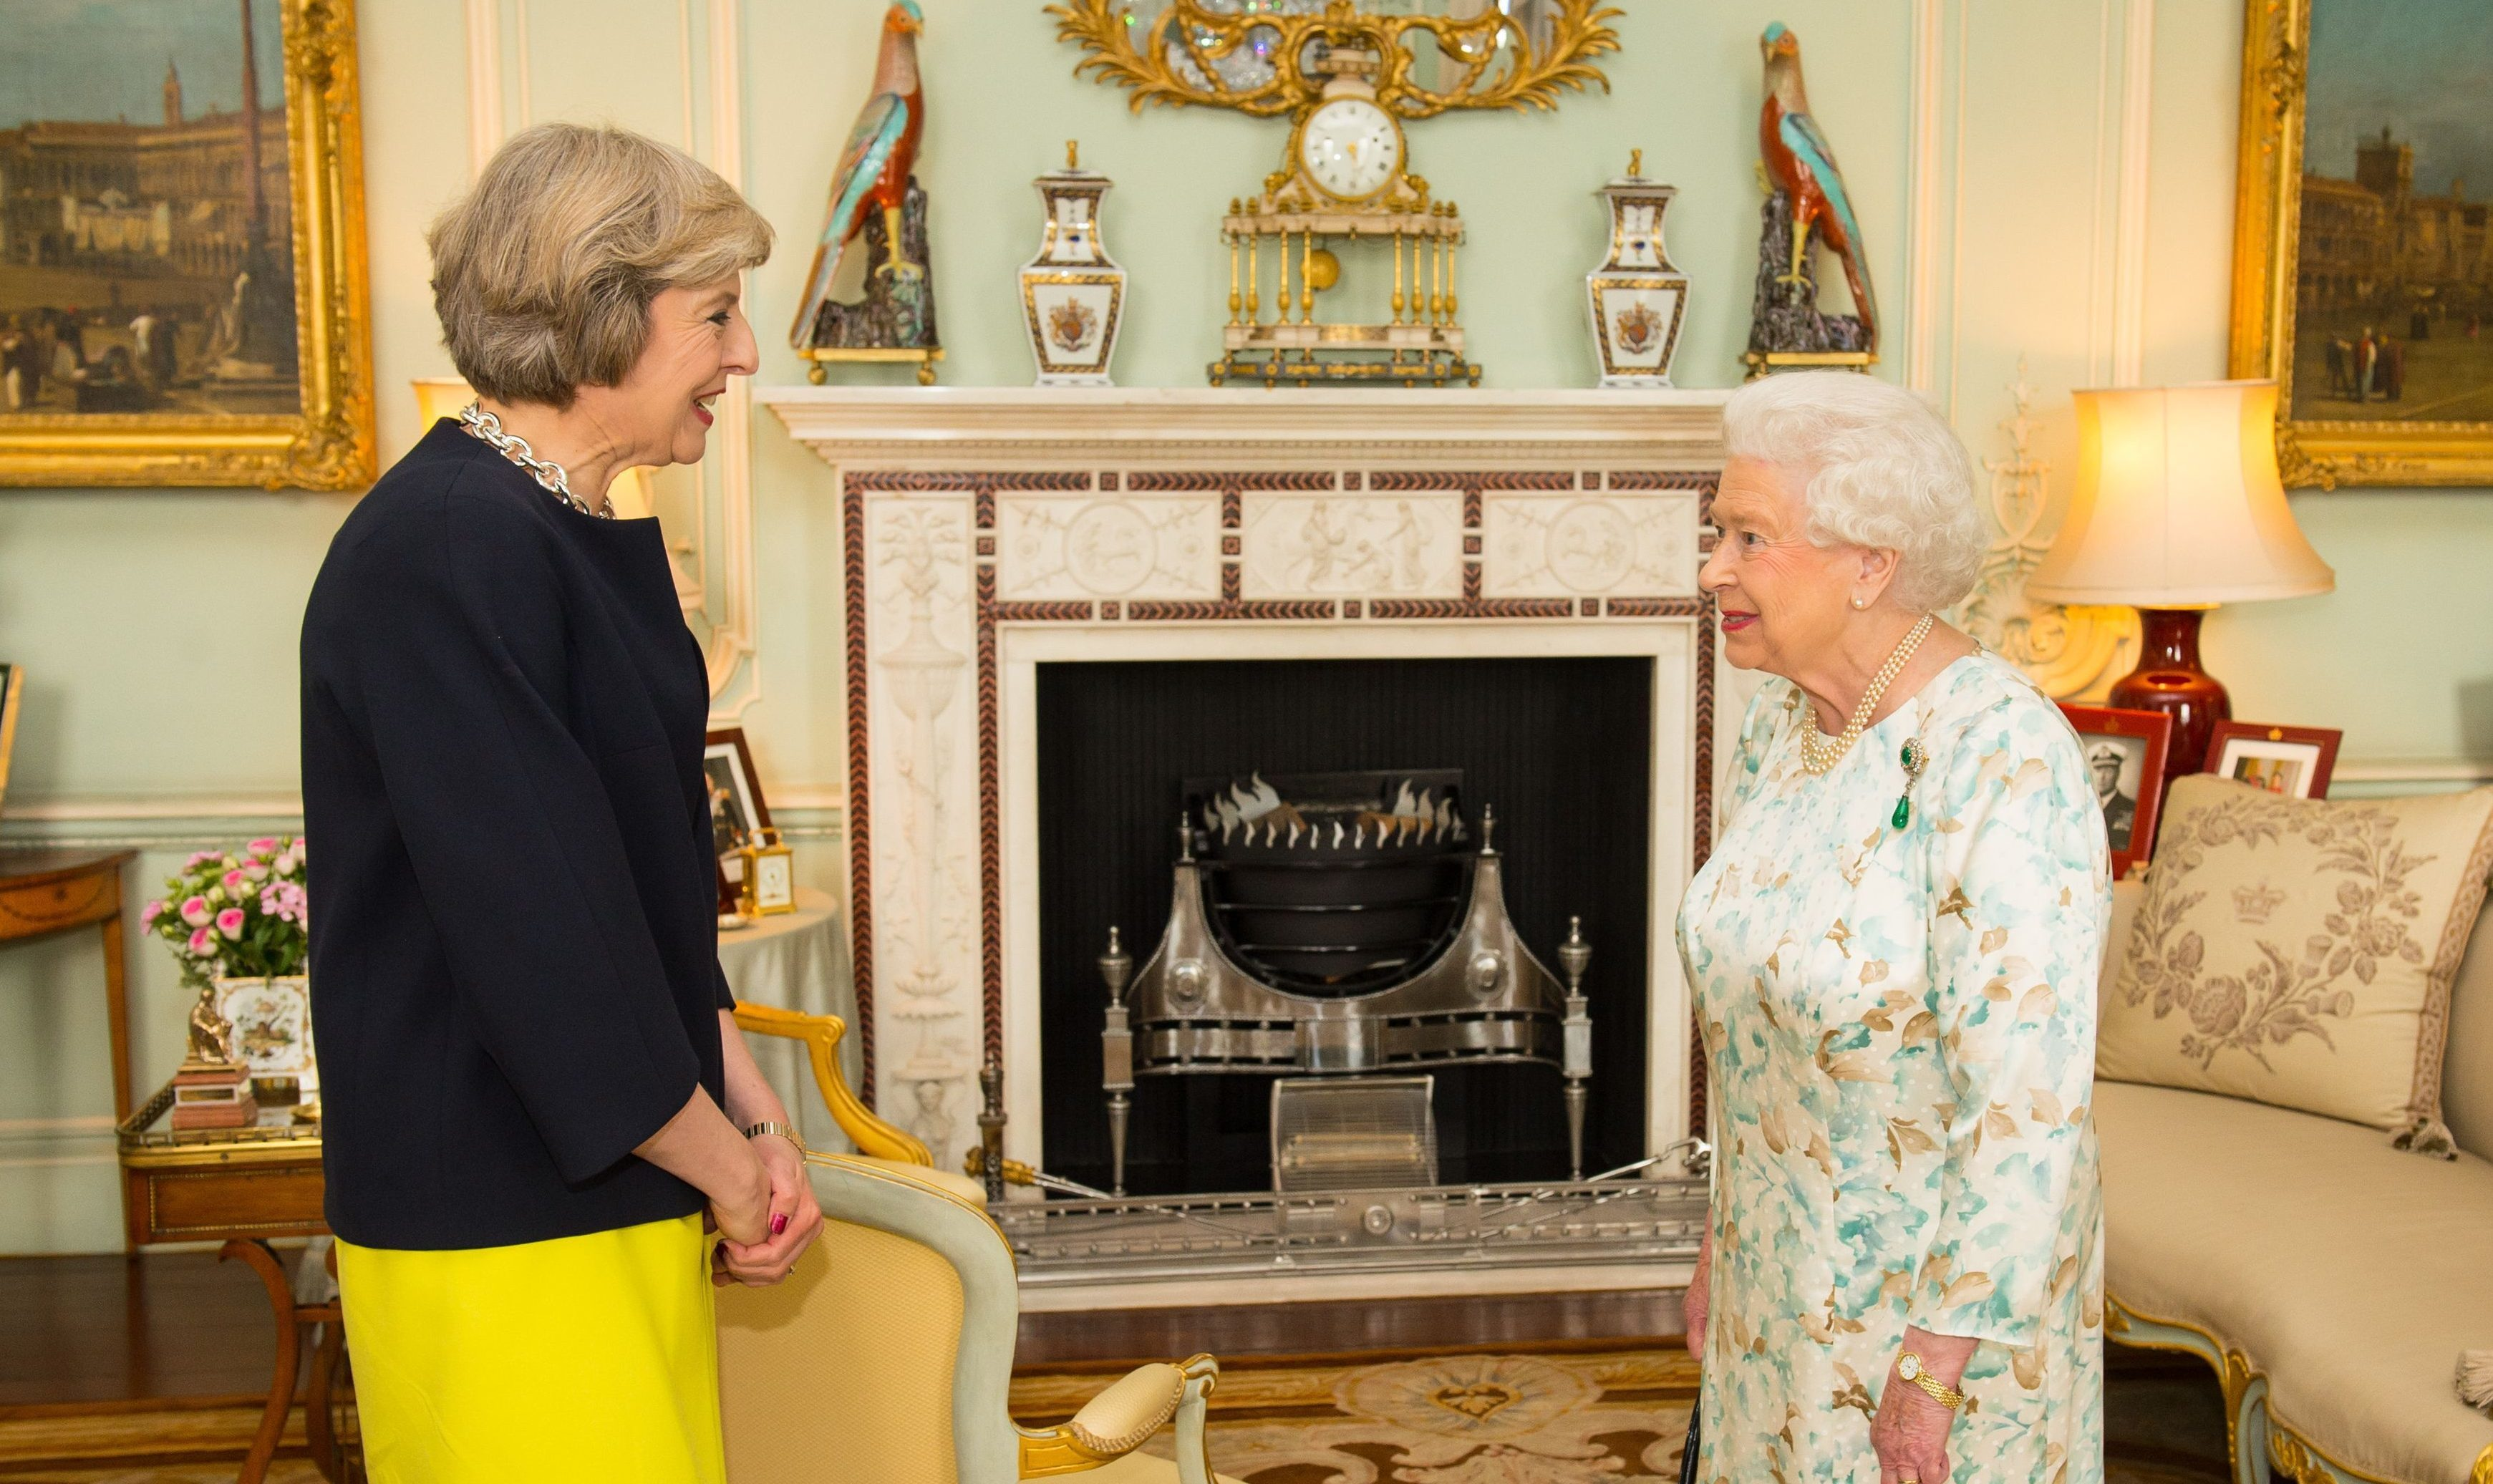 Queen Elizabeth II welcomes Theresa May at the start of an audience in Buckingham Palace in which she invited the former Home Secretary to form a government